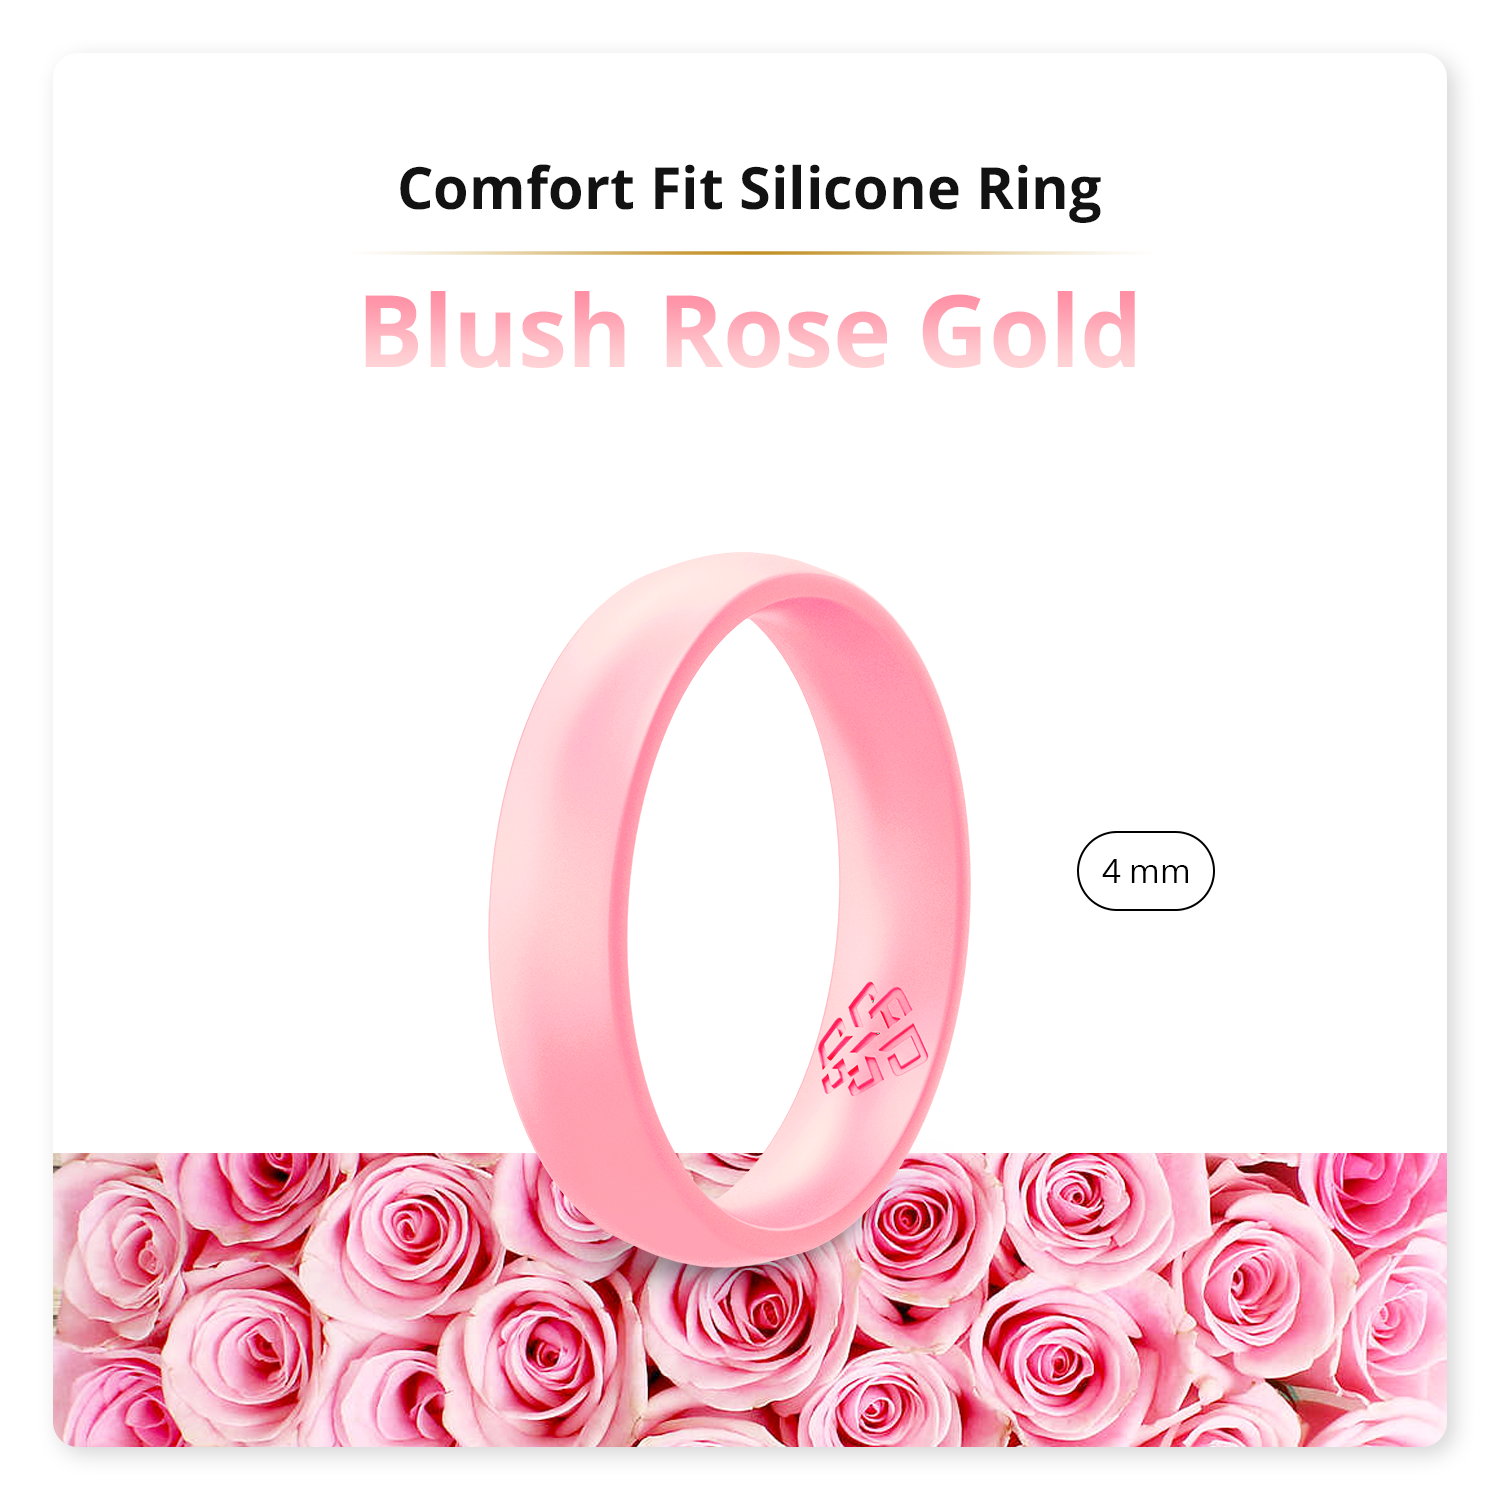 Blush Rose Gold Domed Comfort Fit Silicone Ring Woman